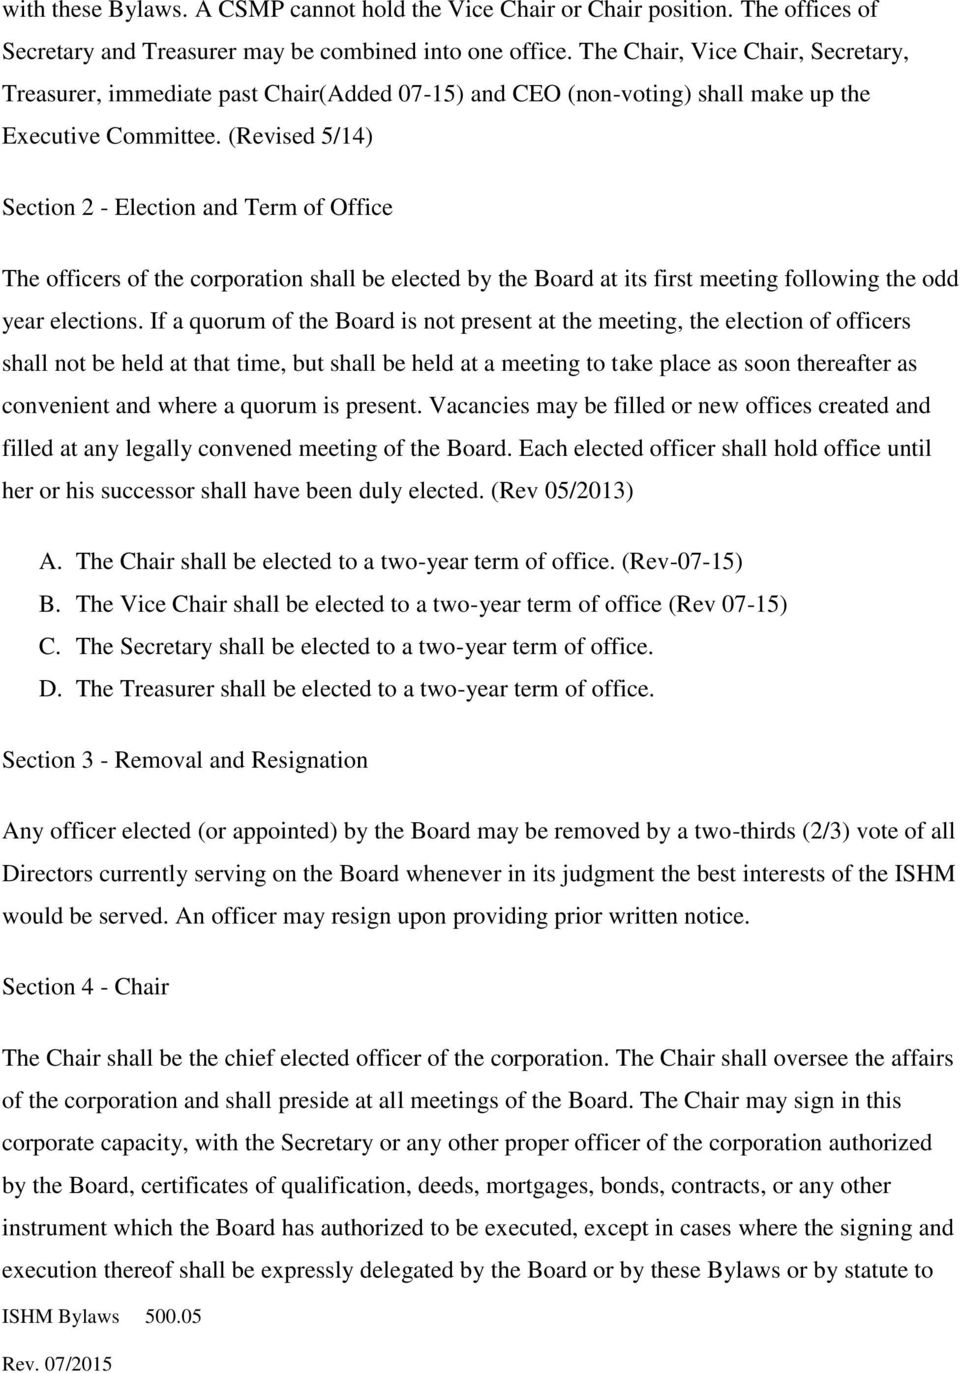 (Revised 5/14) Section 2 - Election and Term of Office The officers of the corporation shall be elected by the Board at its first meeting following the odd year elections.